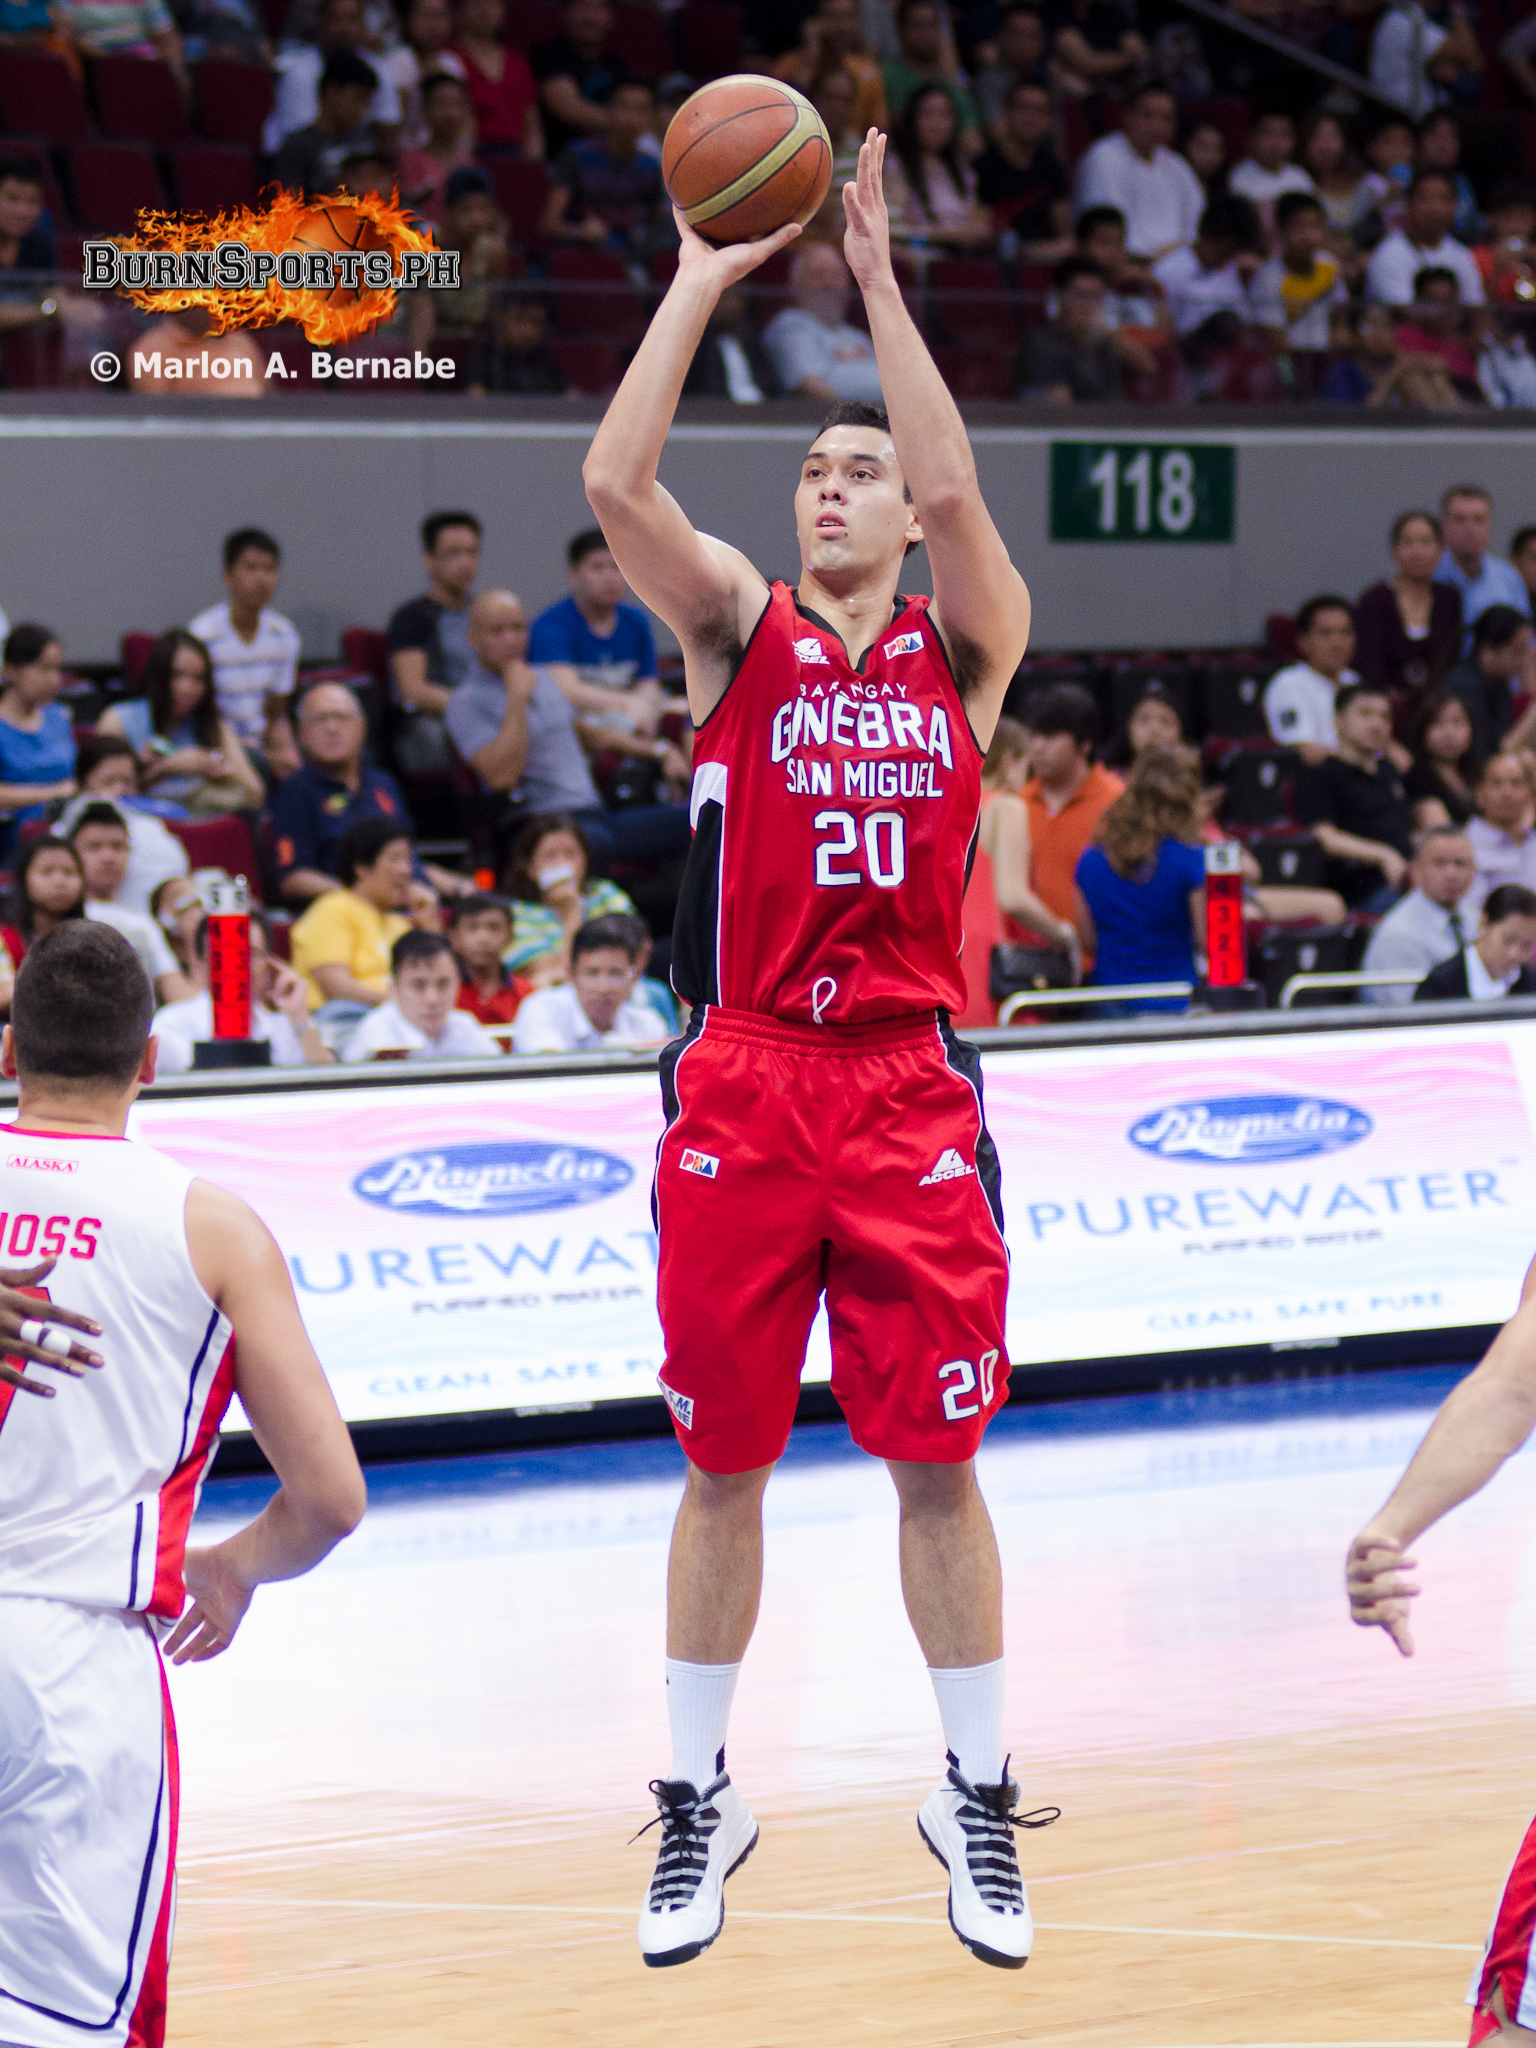 2015 PBA Philippine Cup (First Conference) Team Rosters # ...  2015 PBA Philip...